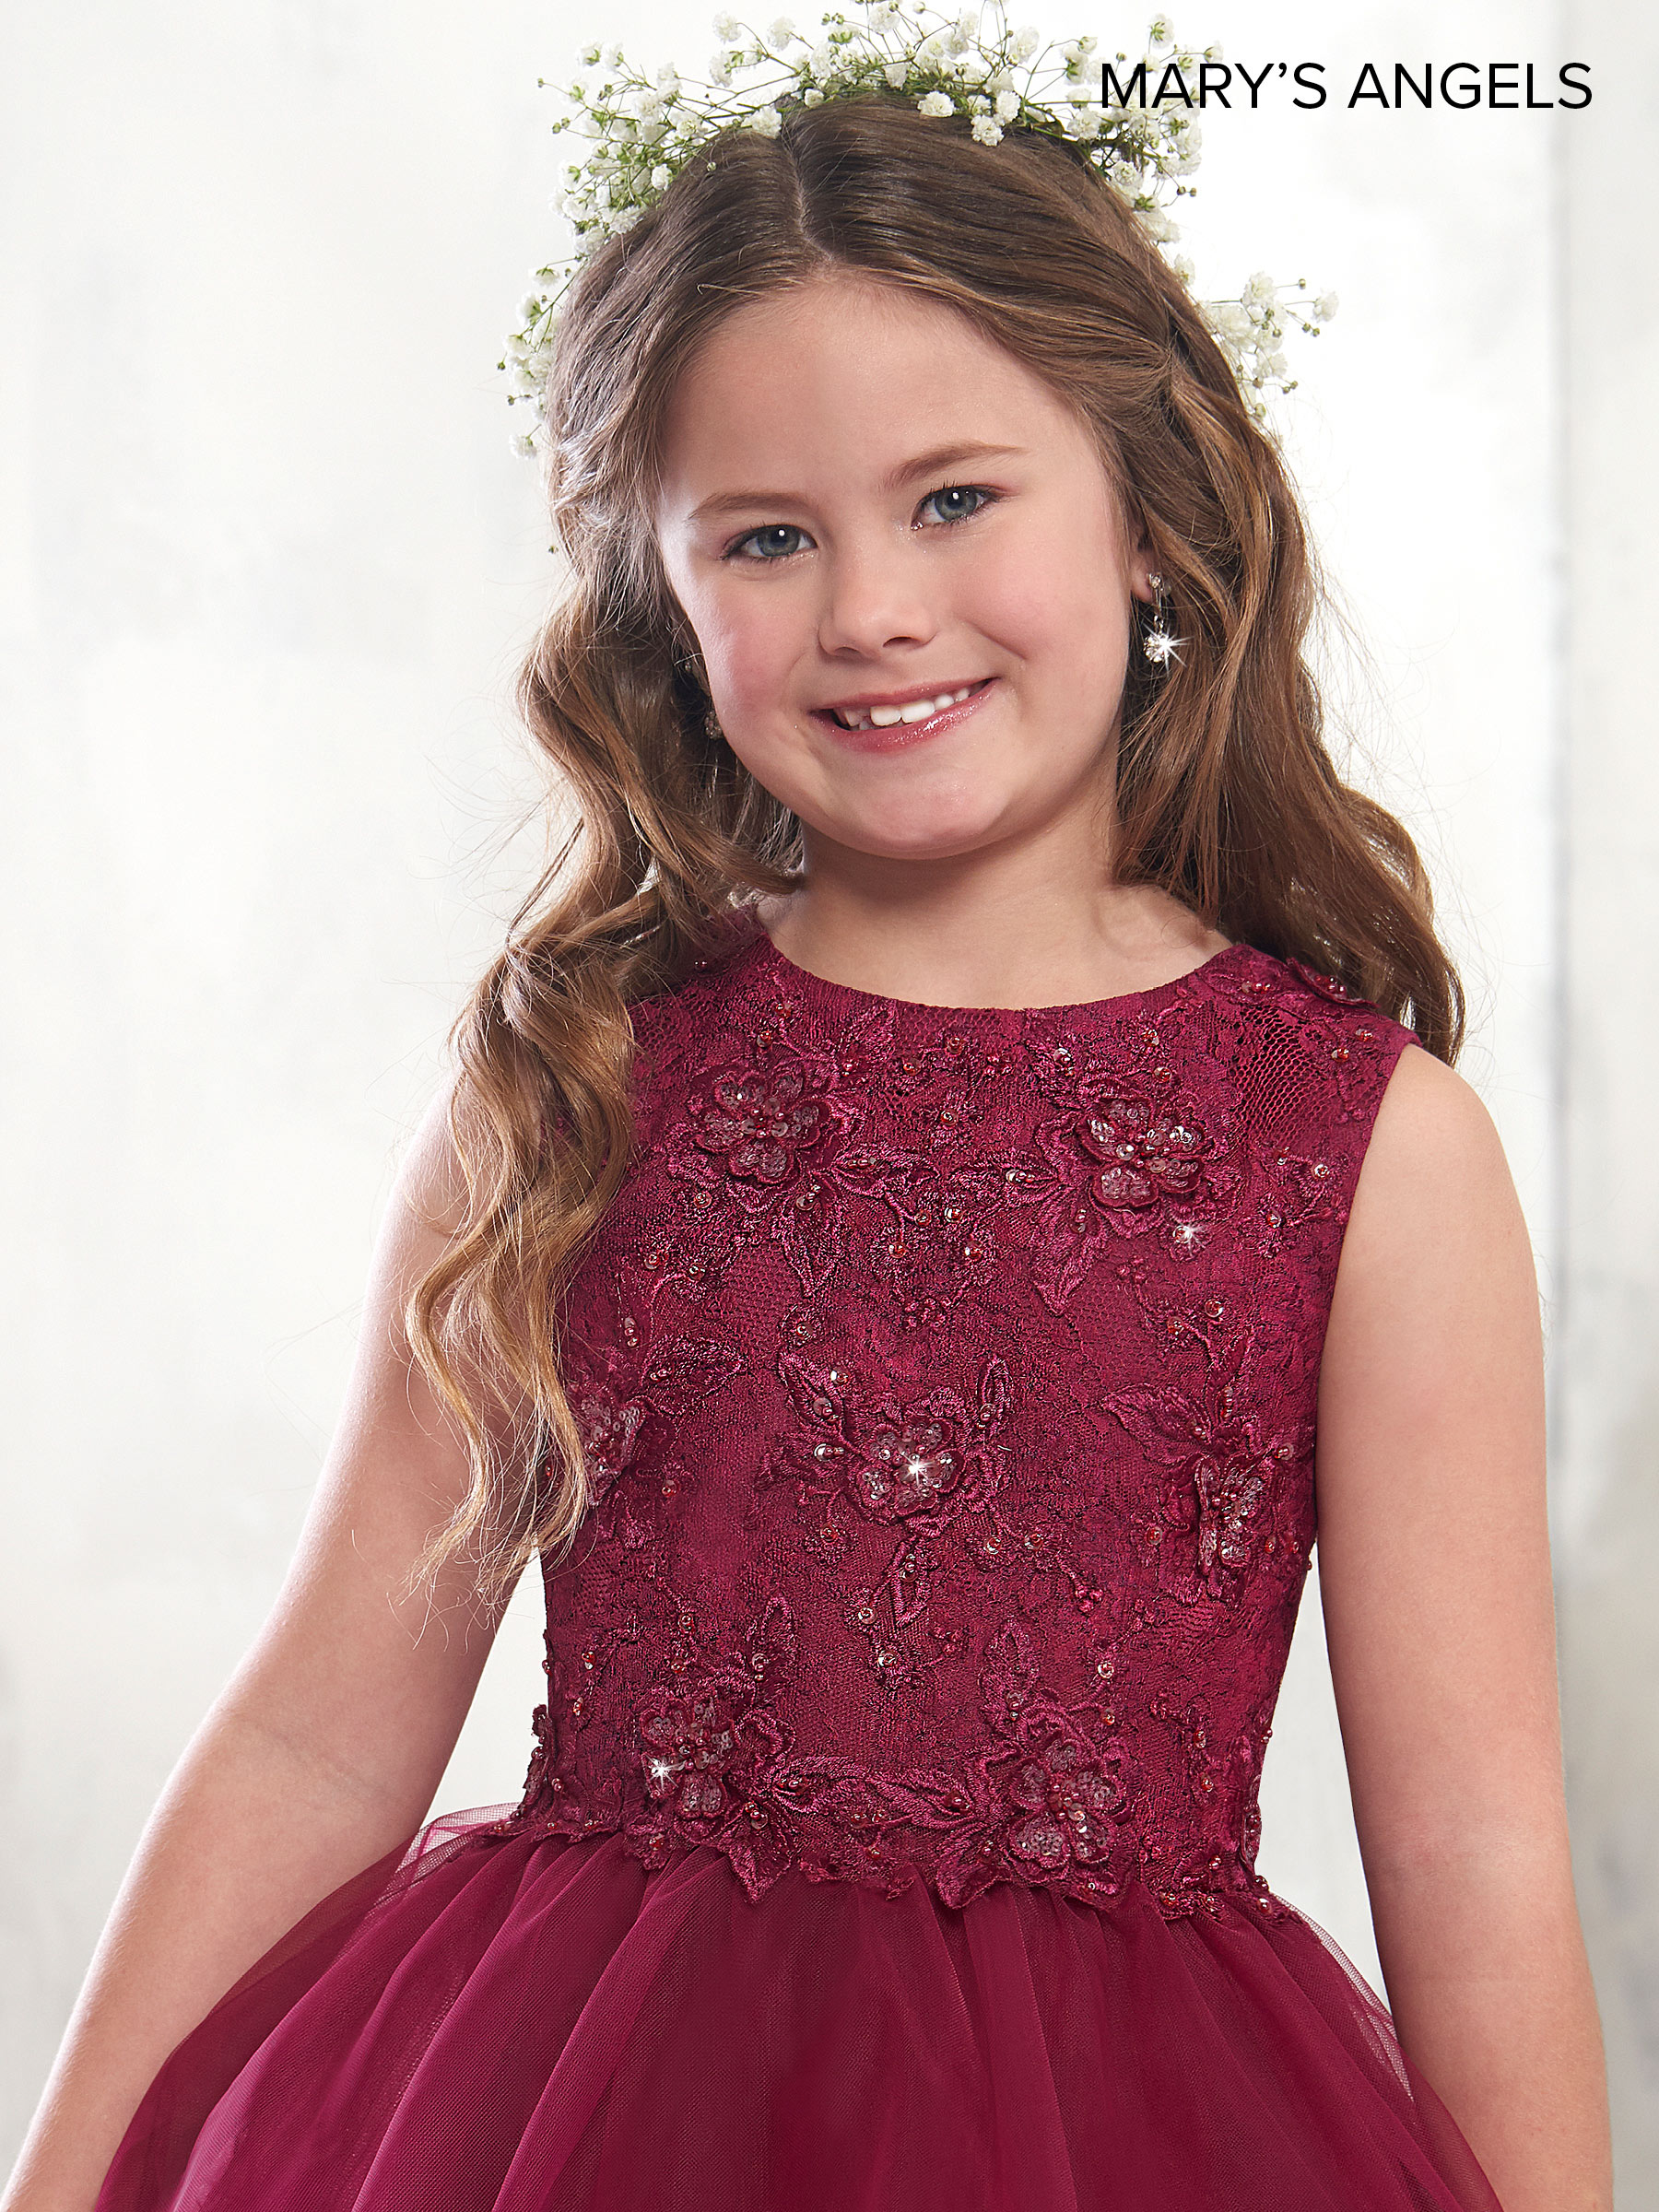 Angel Flower Girl Dresses | Mary's Angels | Style - MB9006